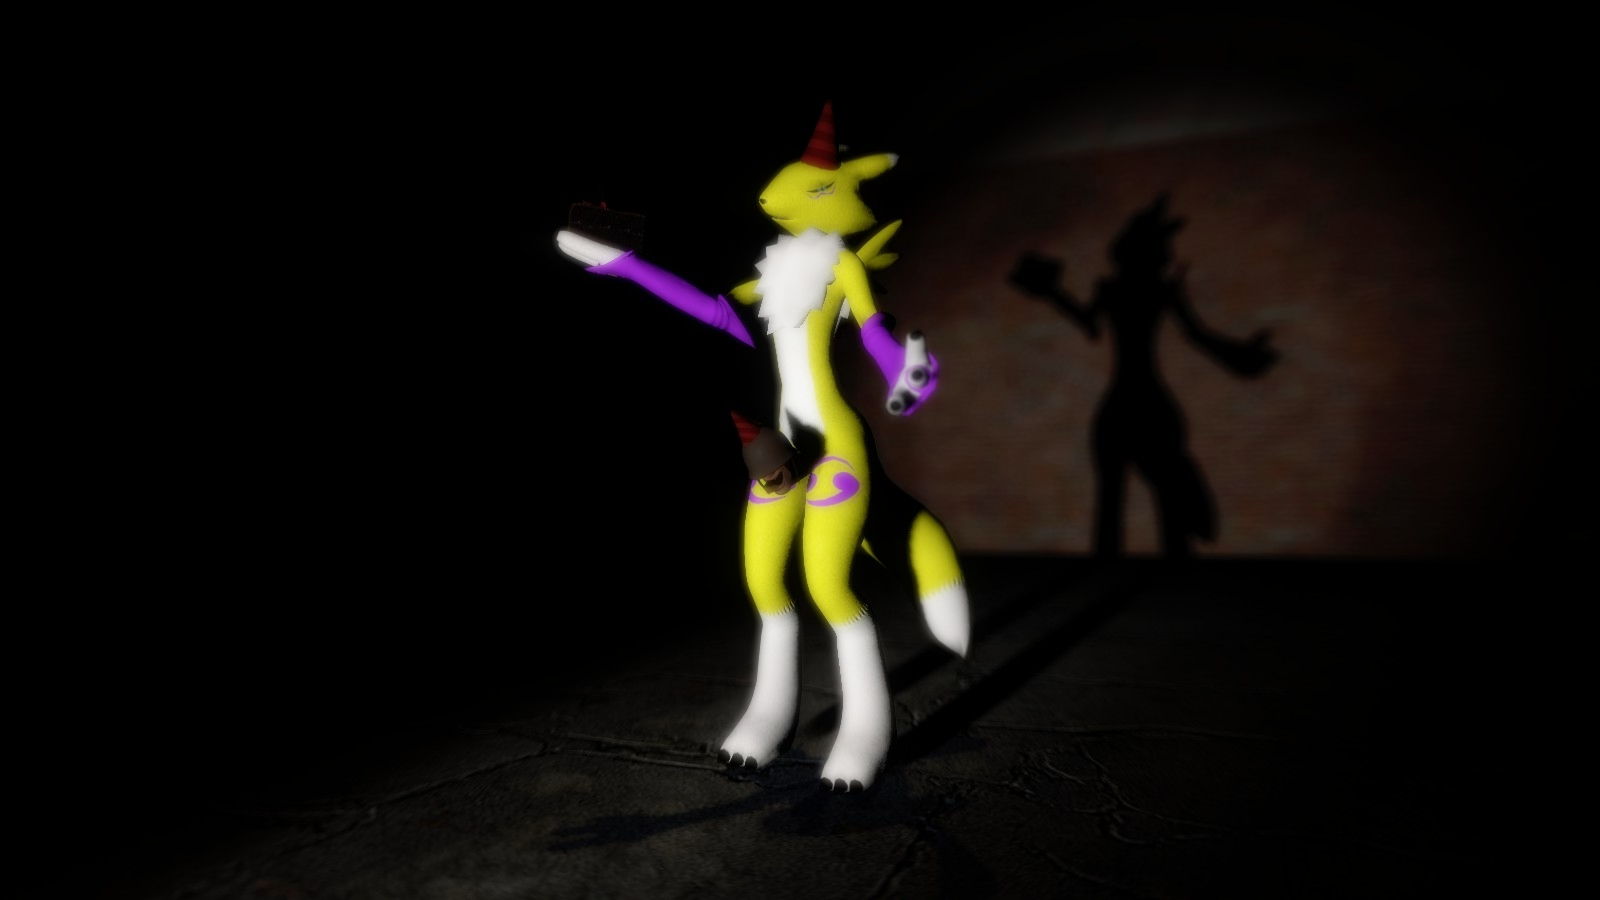 One Year of Dirty Renamon by RandomMadnessityfier